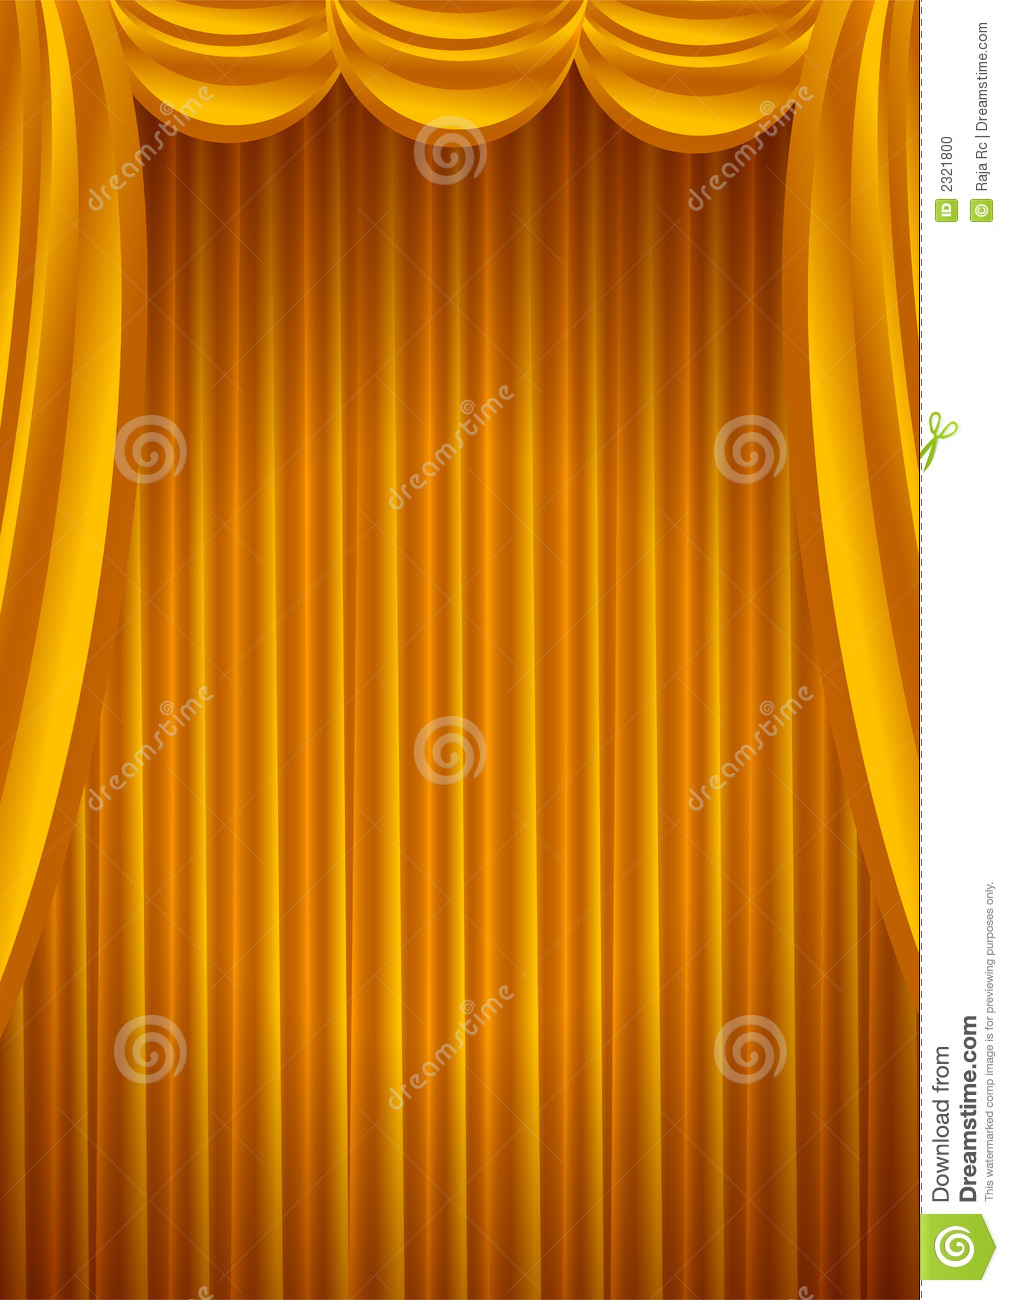 Beautiful golden theater curtains background - vector.